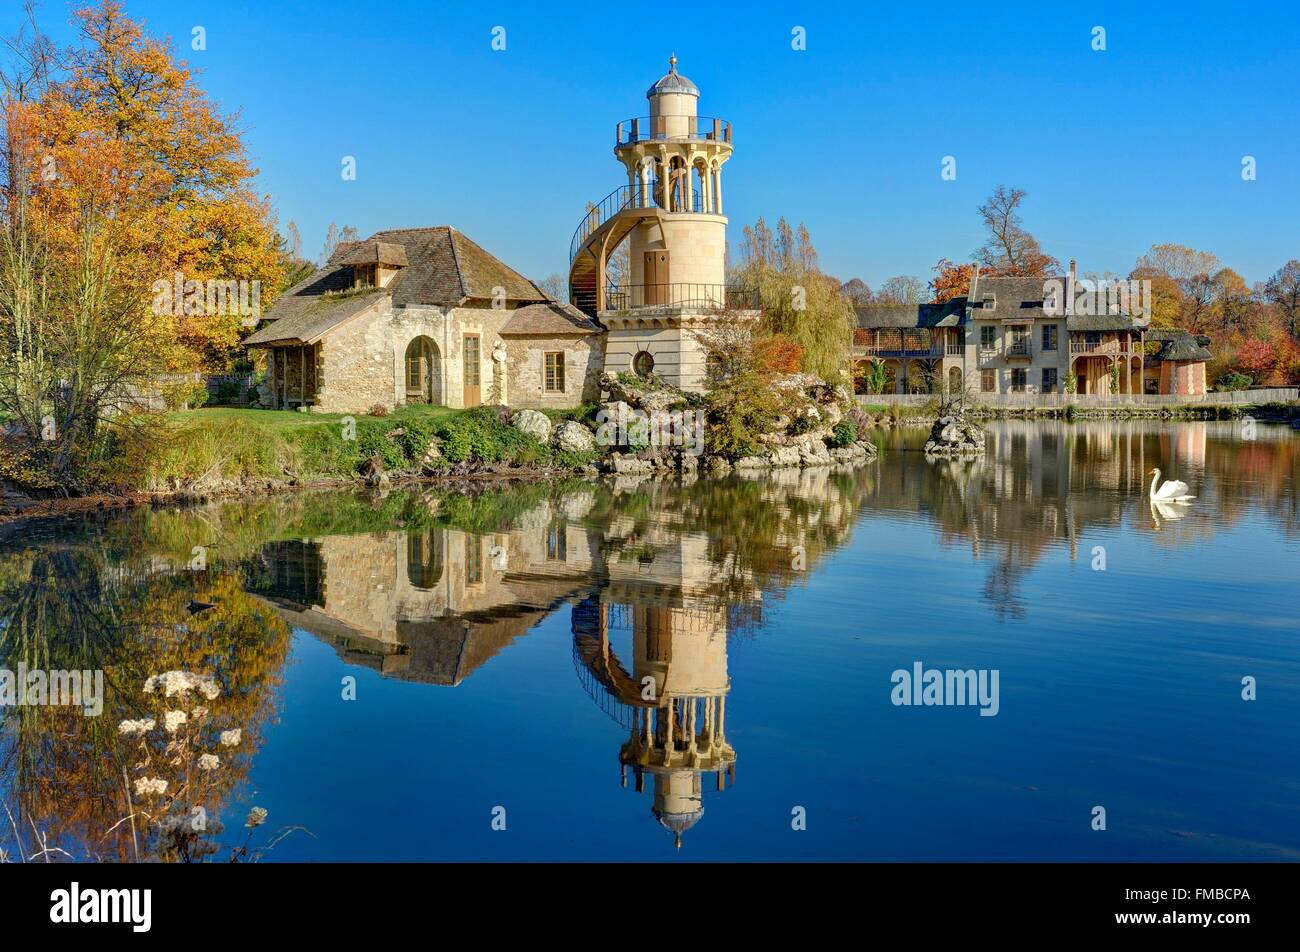 France, Yvelines, Versailles, palace of Versailles listed as World Heritage by UNESCO, Marie Antoinett's estate, - Stock Image